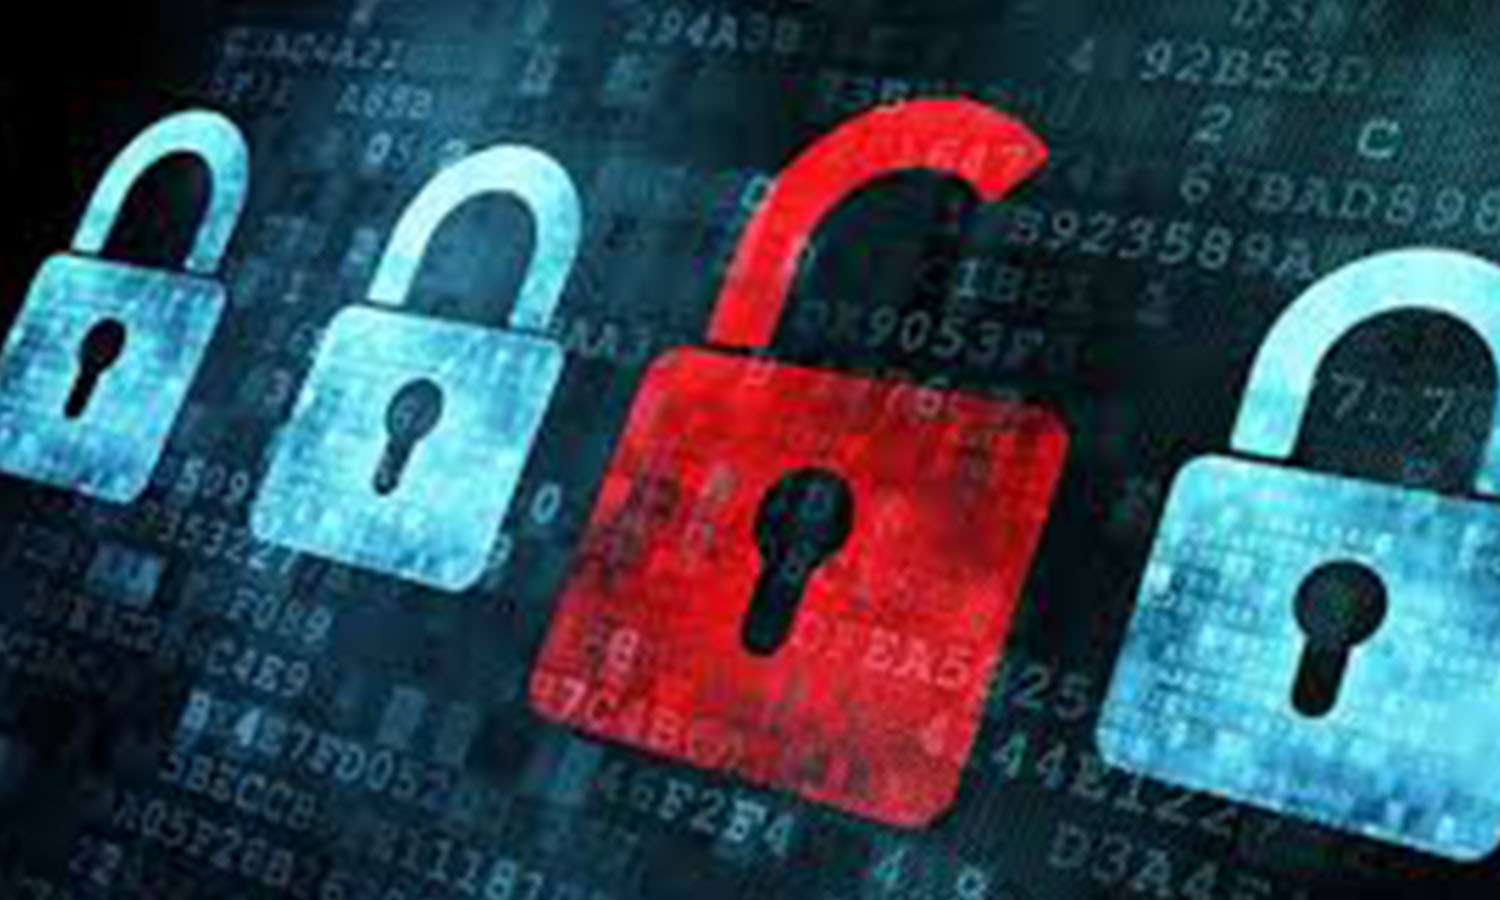 Here are Some Tips on How to Keep Your Small Business Data Secure